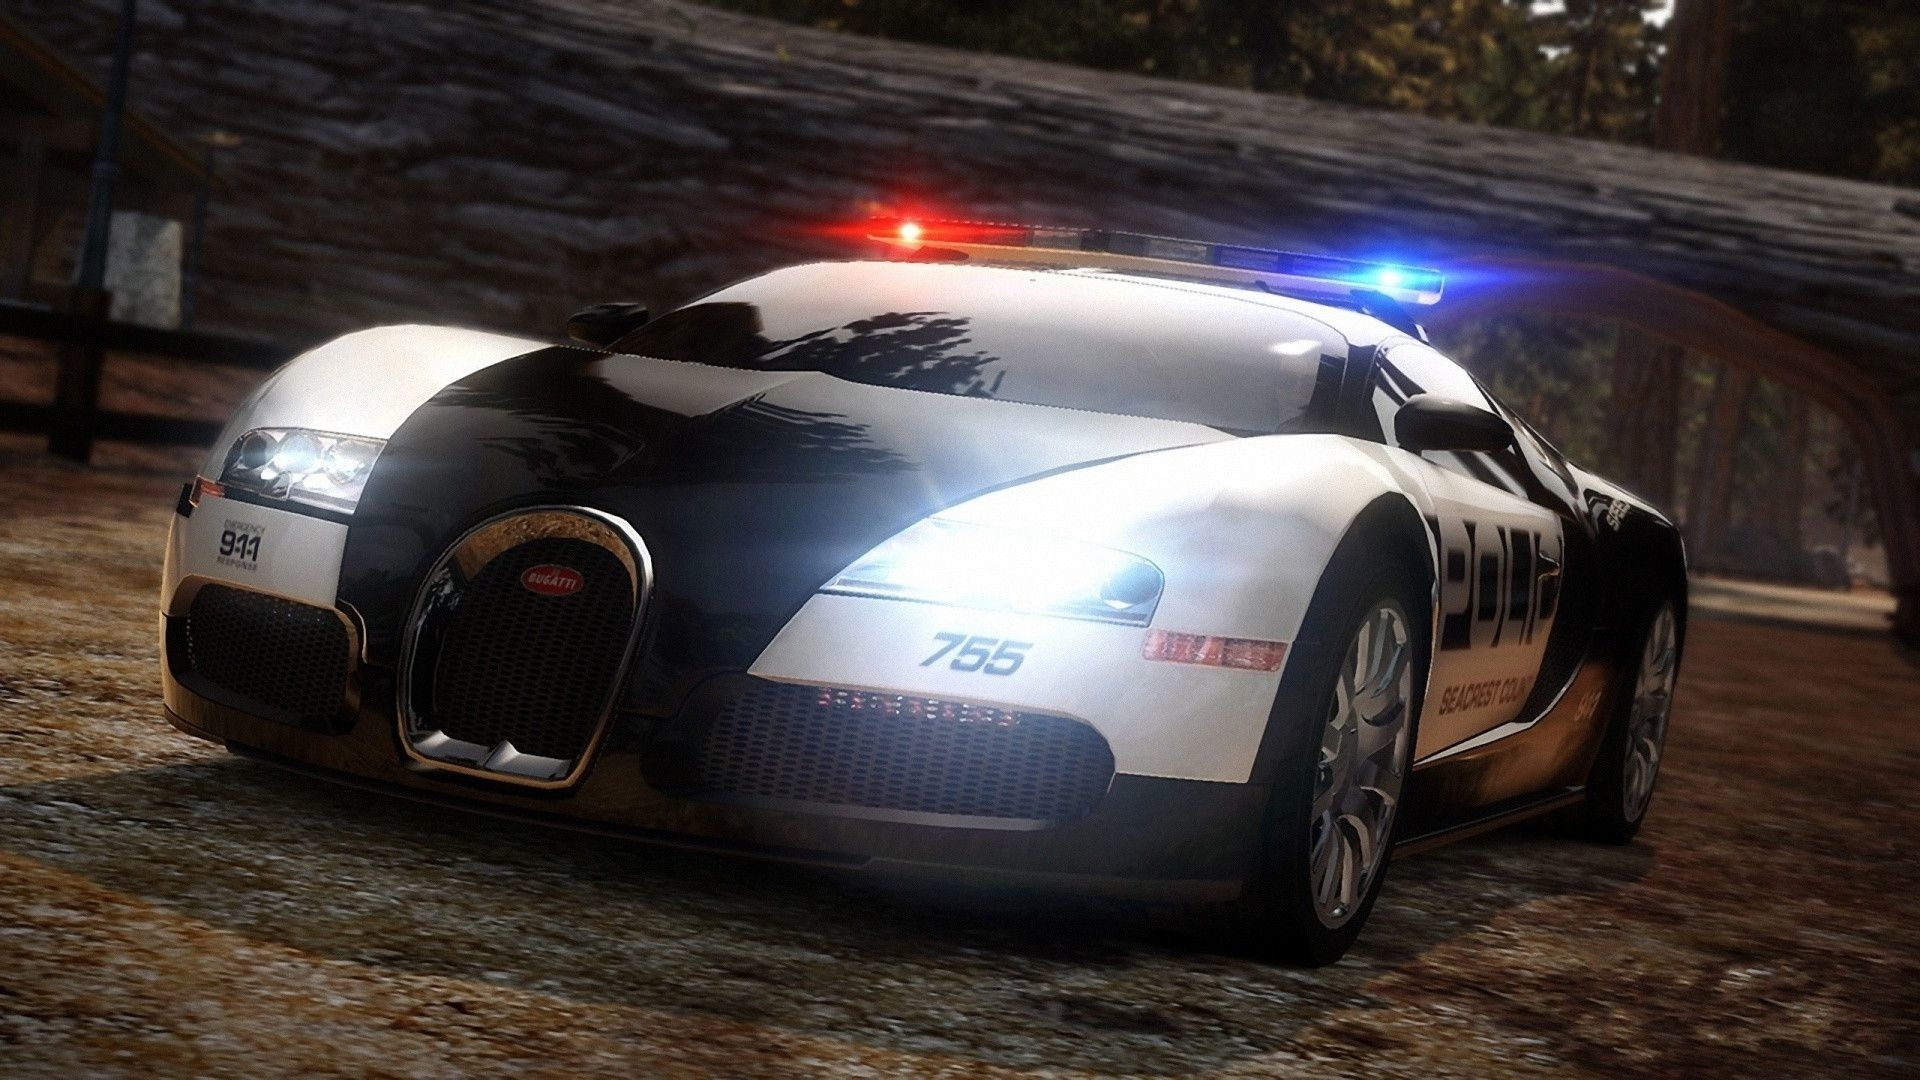 1920x1080 Need for Speed Rivals Police Car HD desktop wallpaper Widescreen